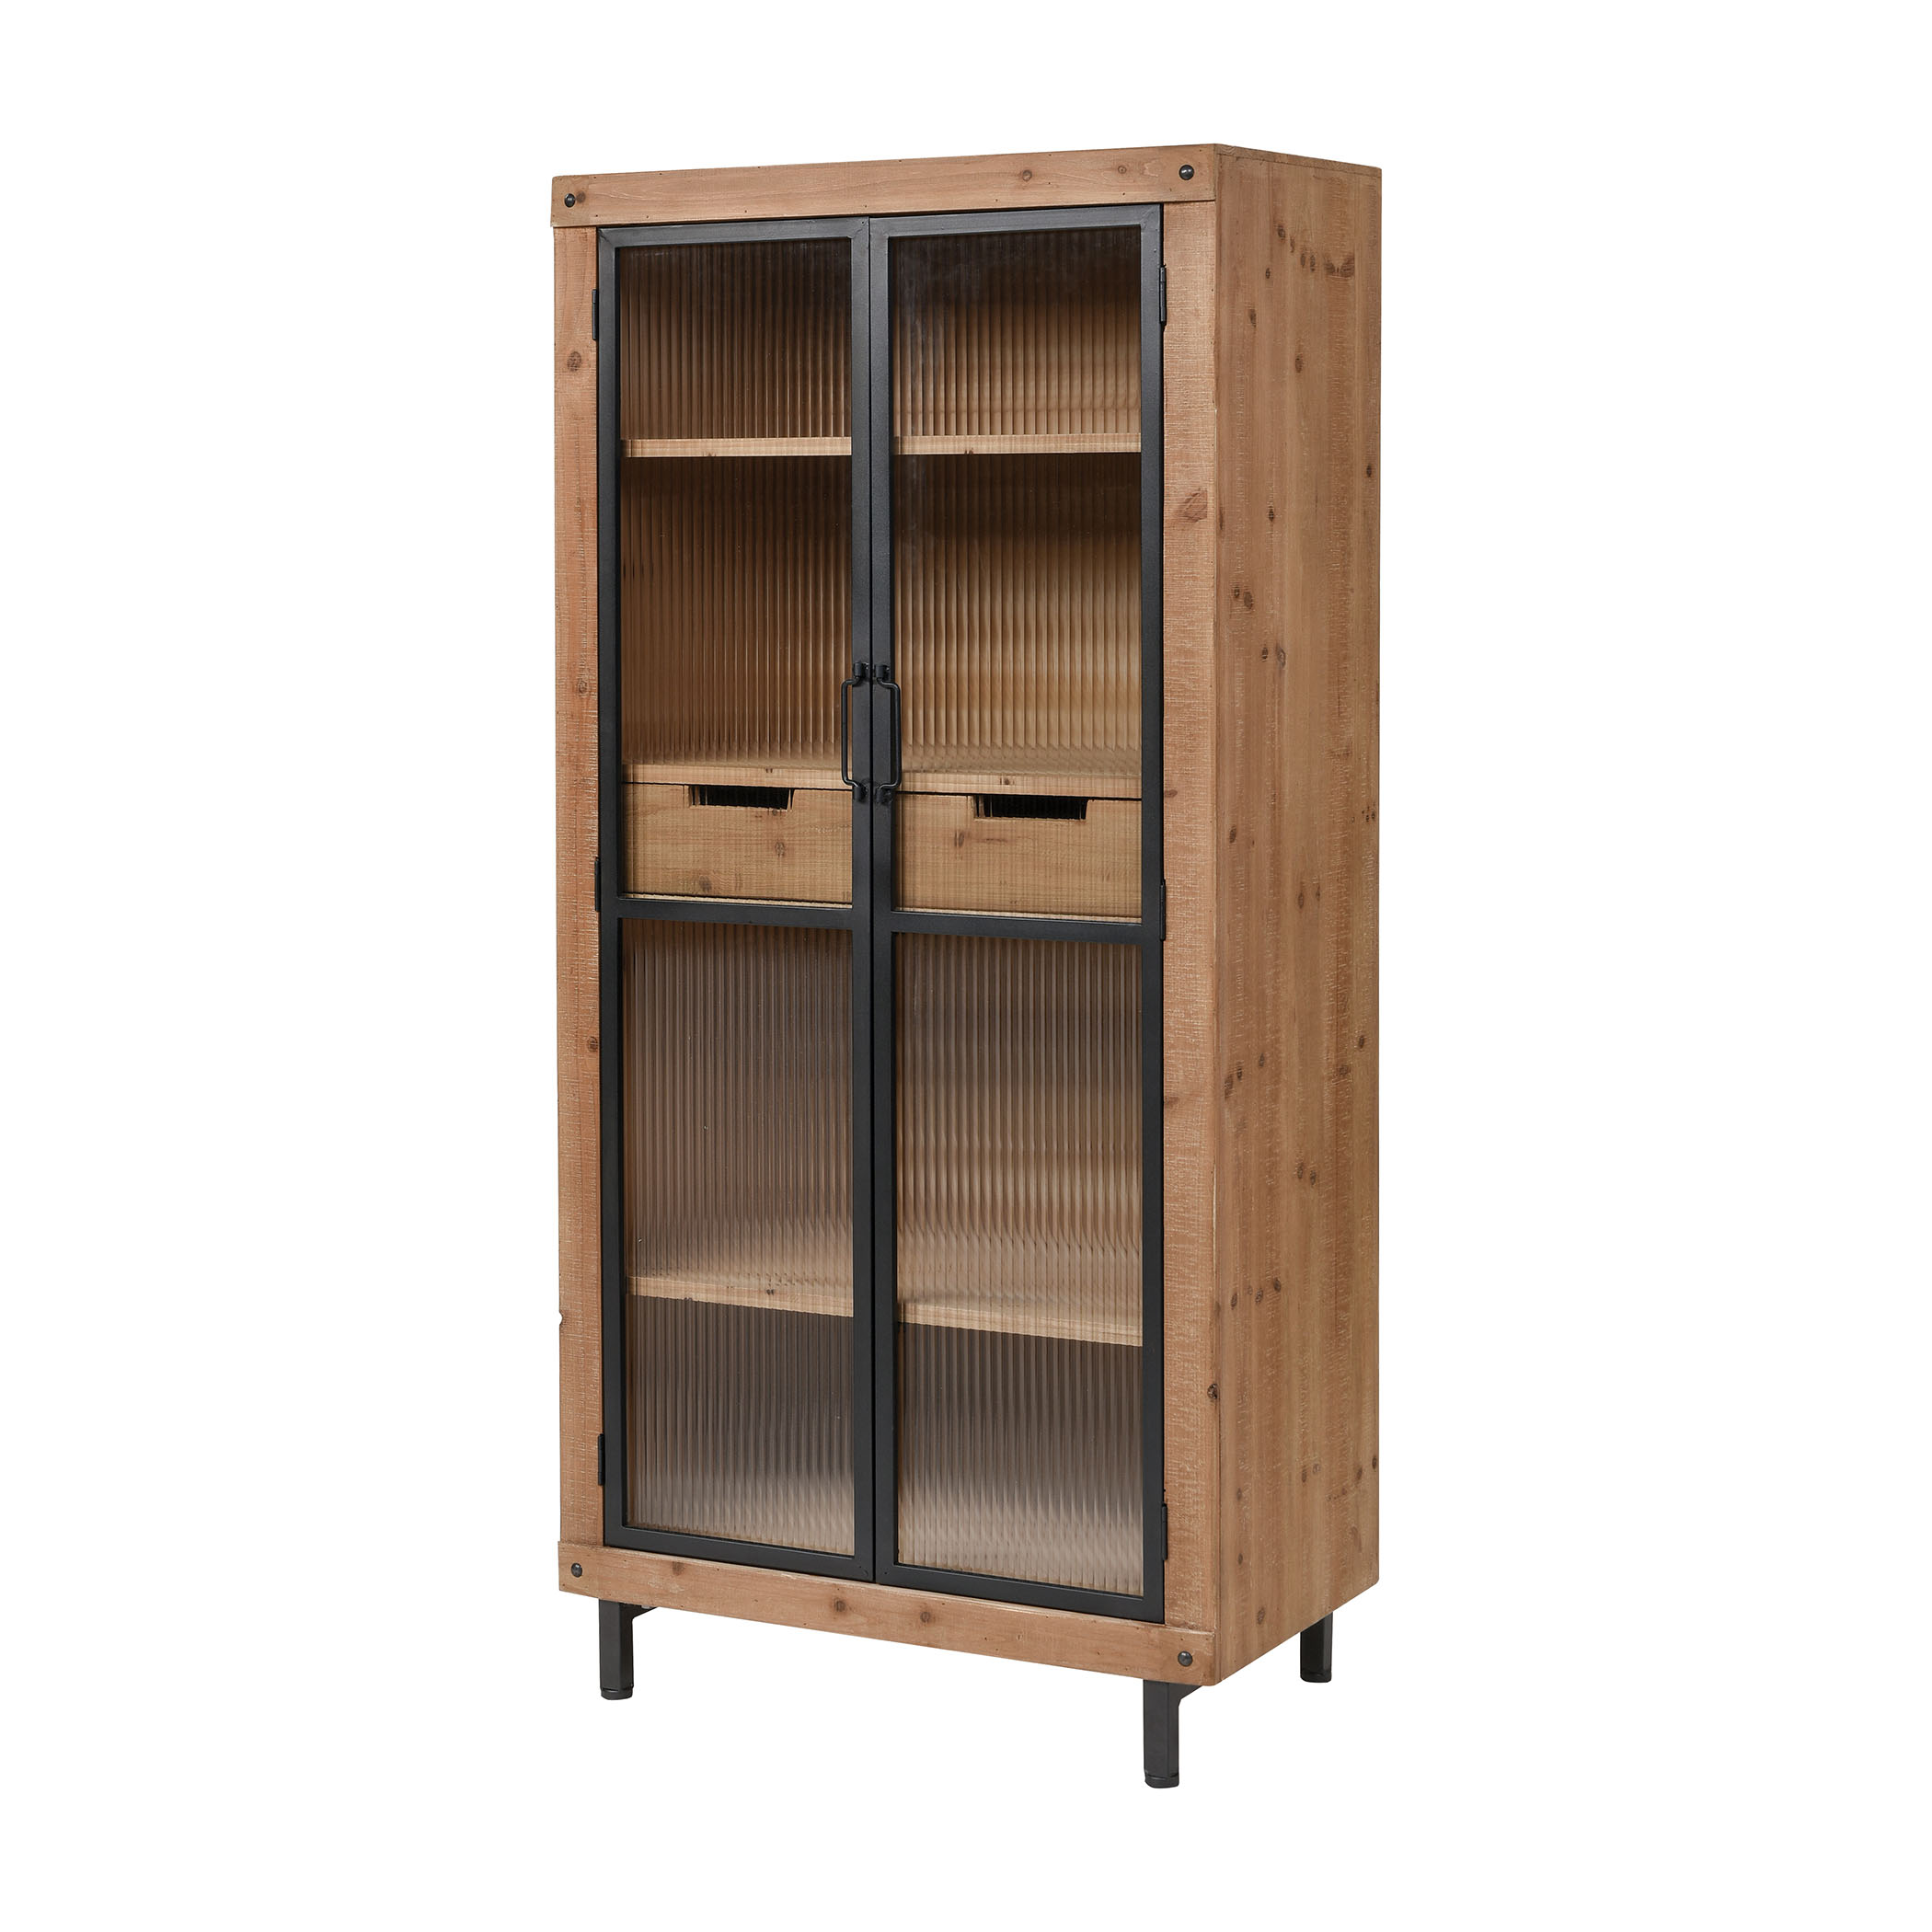 Institution Shelves in Natural Wood Tone and Black | Elk Home